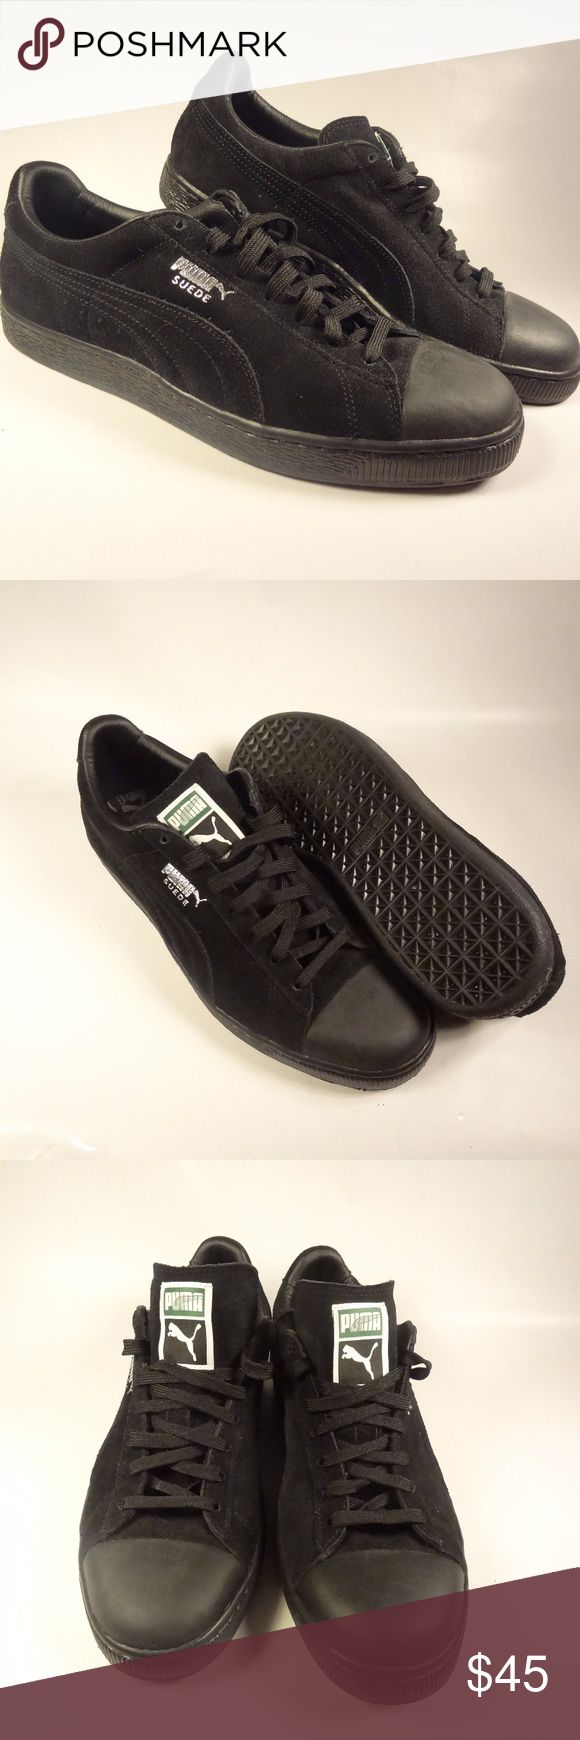 Men's PUMA Suede Classic Leather Formstrip Sneaker Brand new, never worn men's PUMA sneakers. All black with silver foil logo. Suede leather upper. Rubber sole. Puma Shoes Sneakers